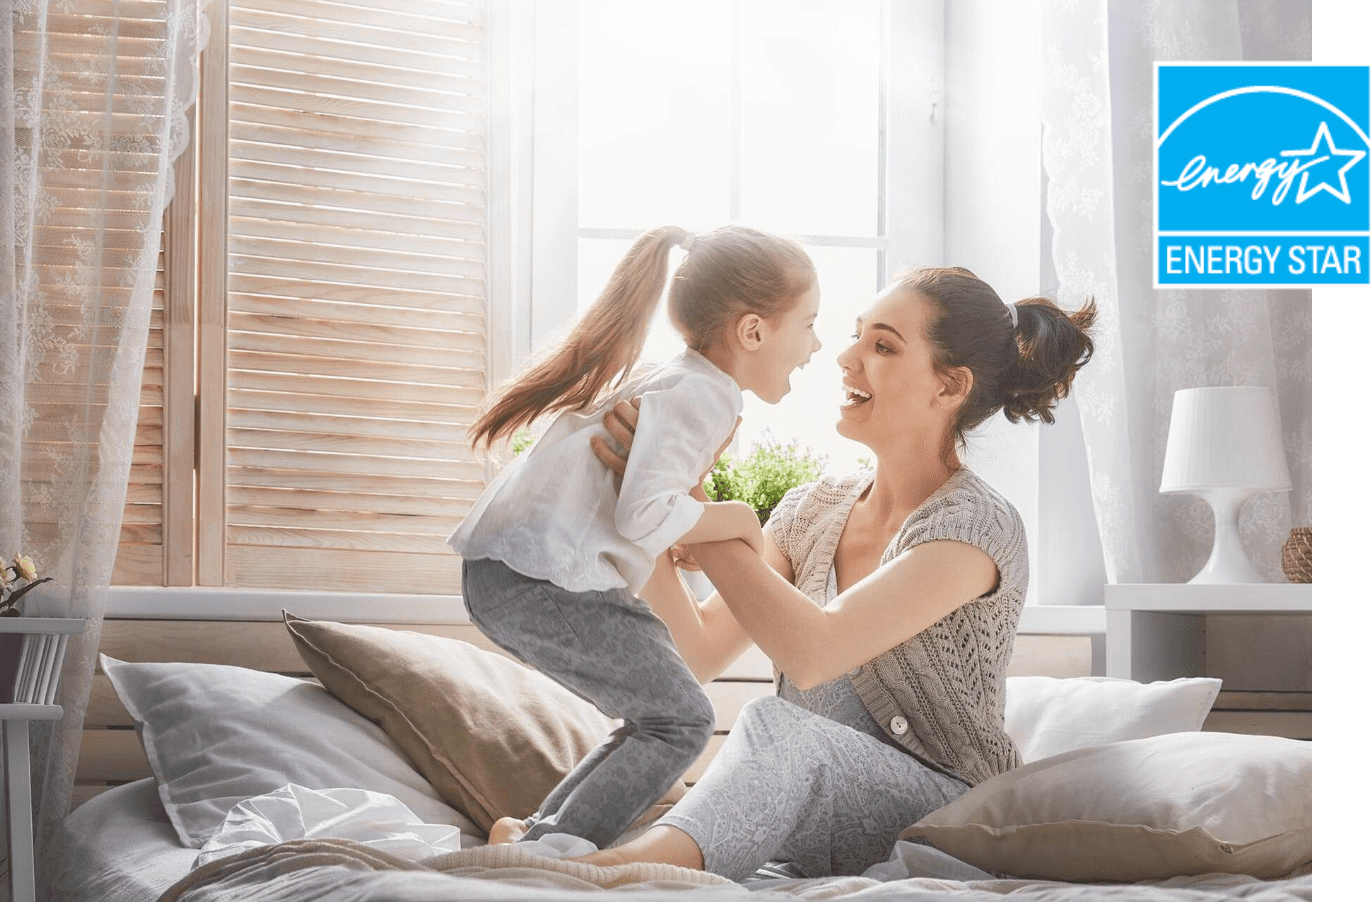 Energy Star Rating Image | Woman and Child